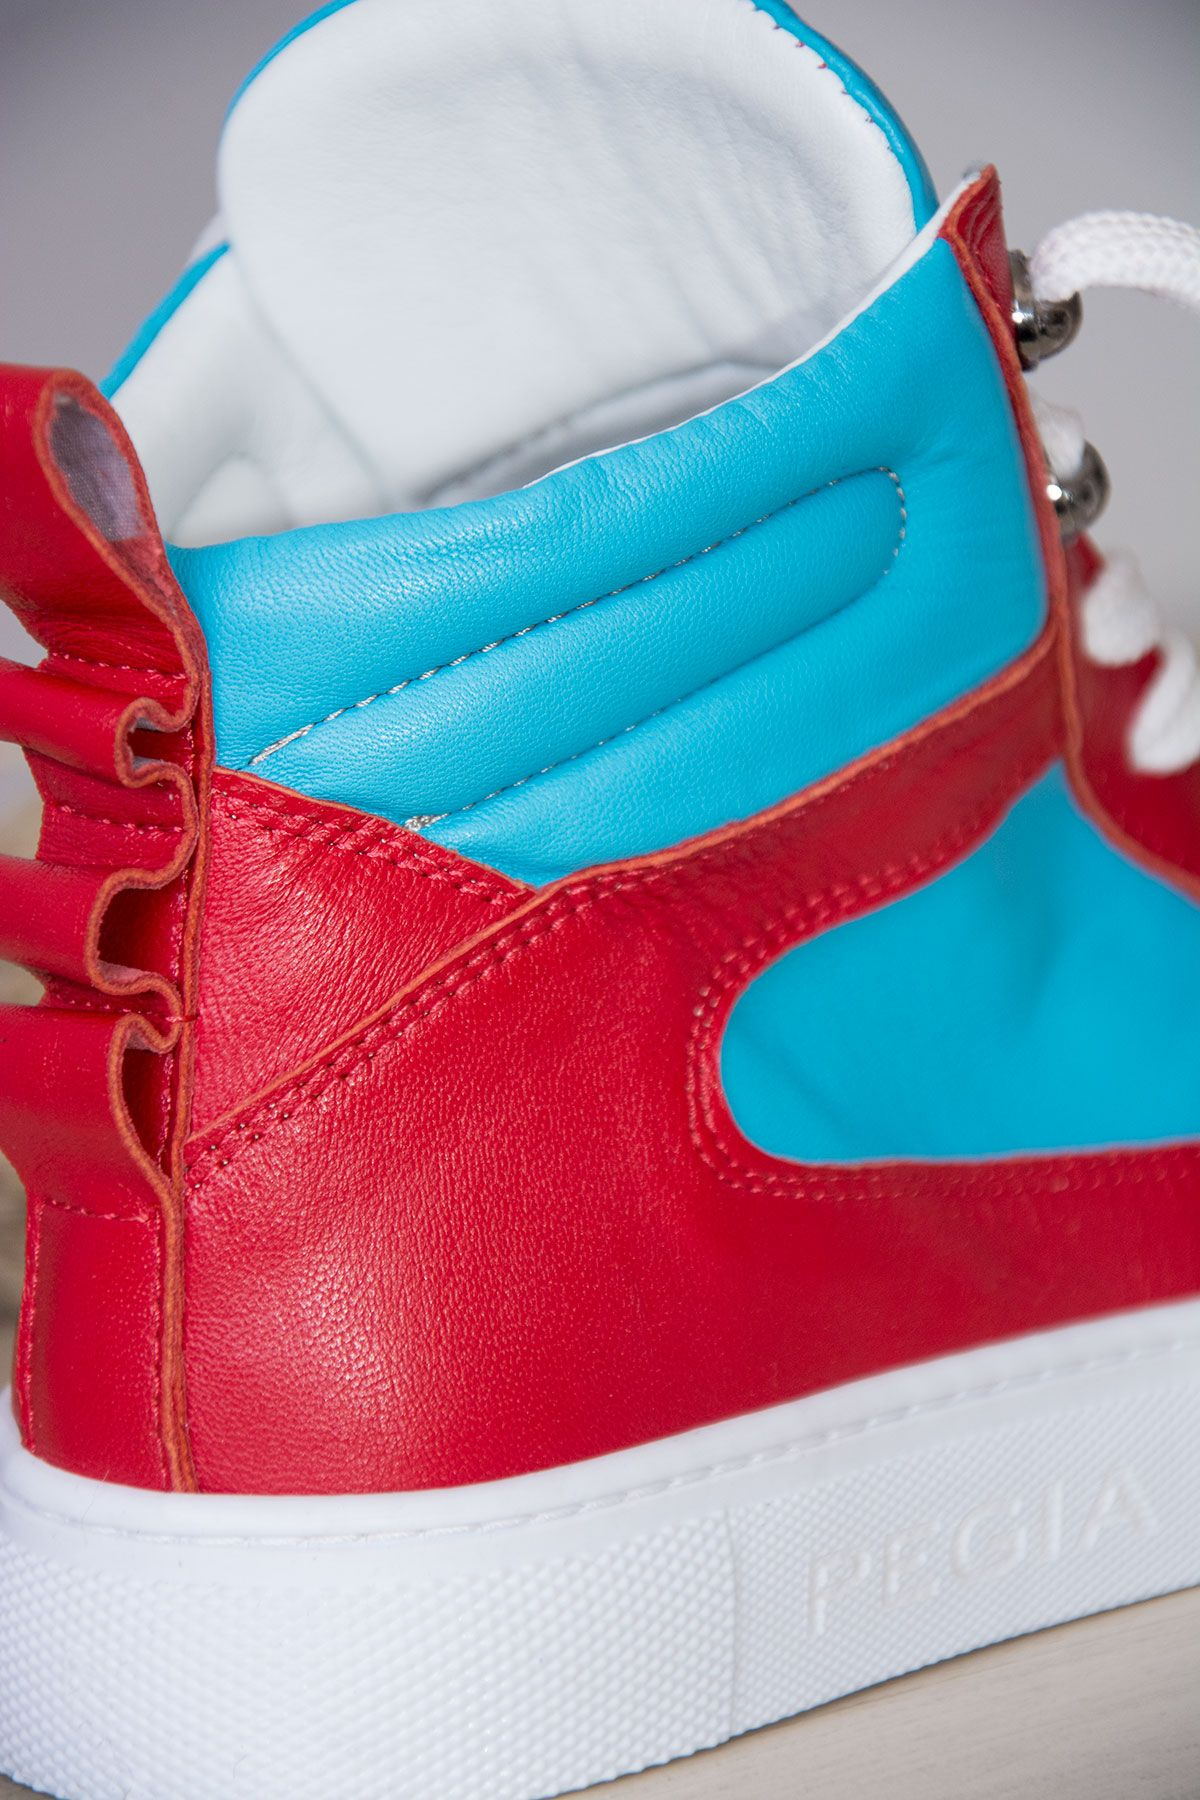 Pegia Genuine Leather Women's Sneaker LA1212 Turquoise